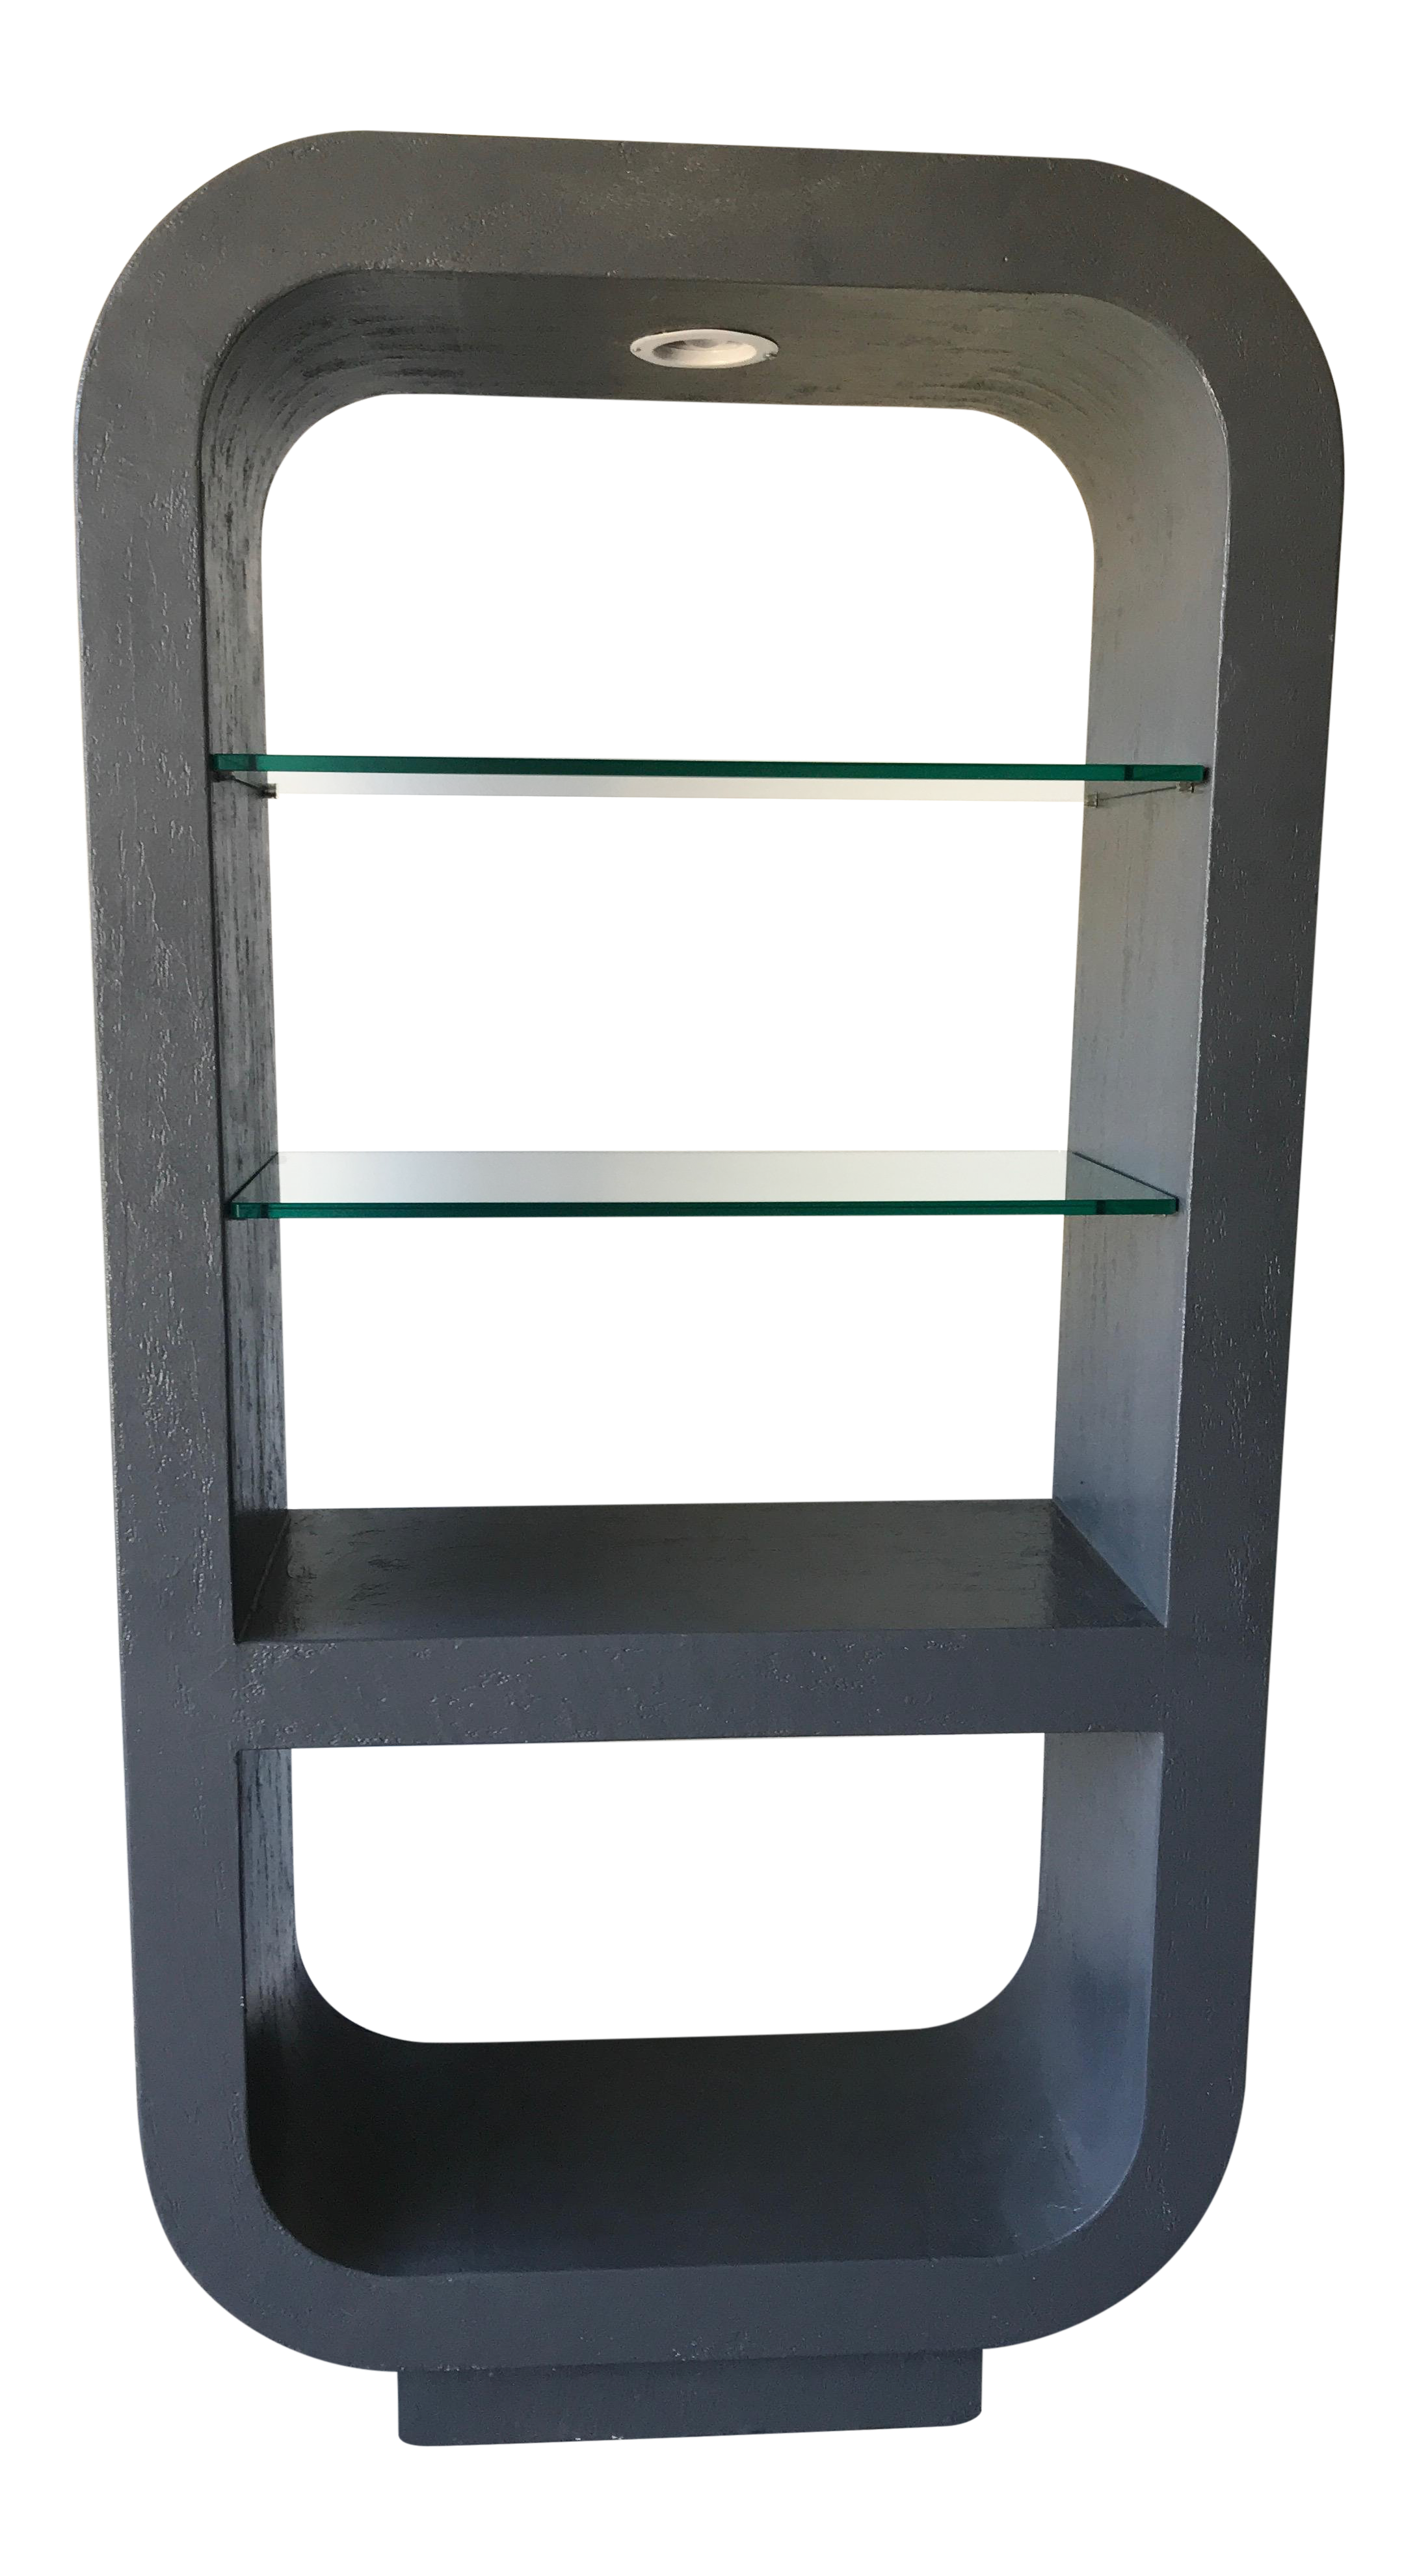 Tremendous Etagere Rounded Lighted Display Case With Thick Glass Shelves Home Interior And Landscaping Ferensignezvosmurscom